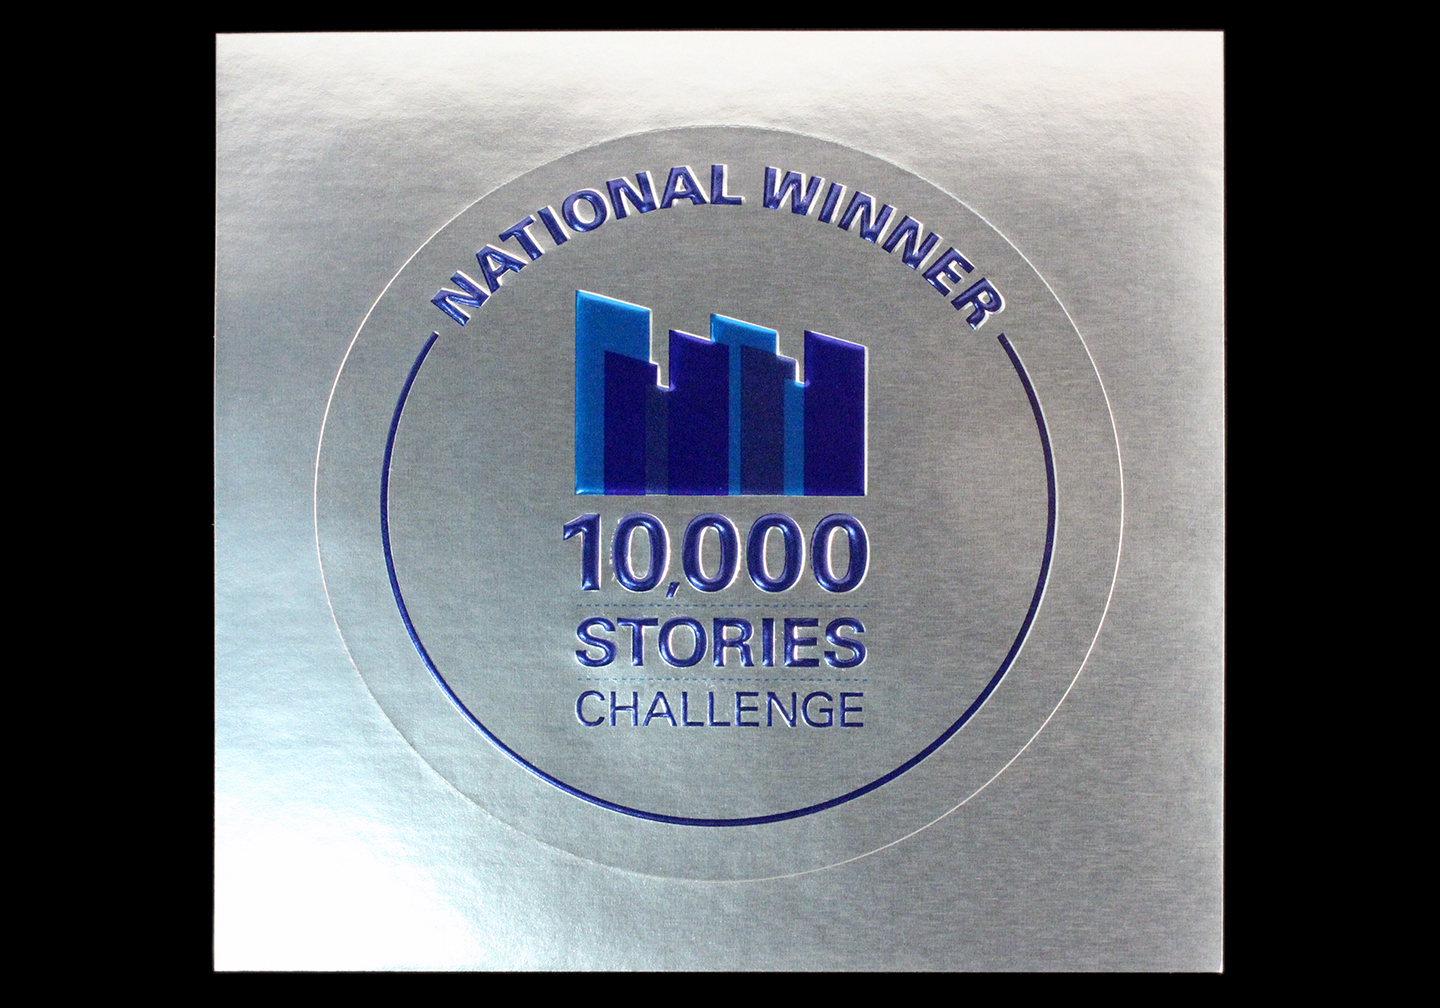 10000 Stories Sticker 01 10x7 @144 DPI